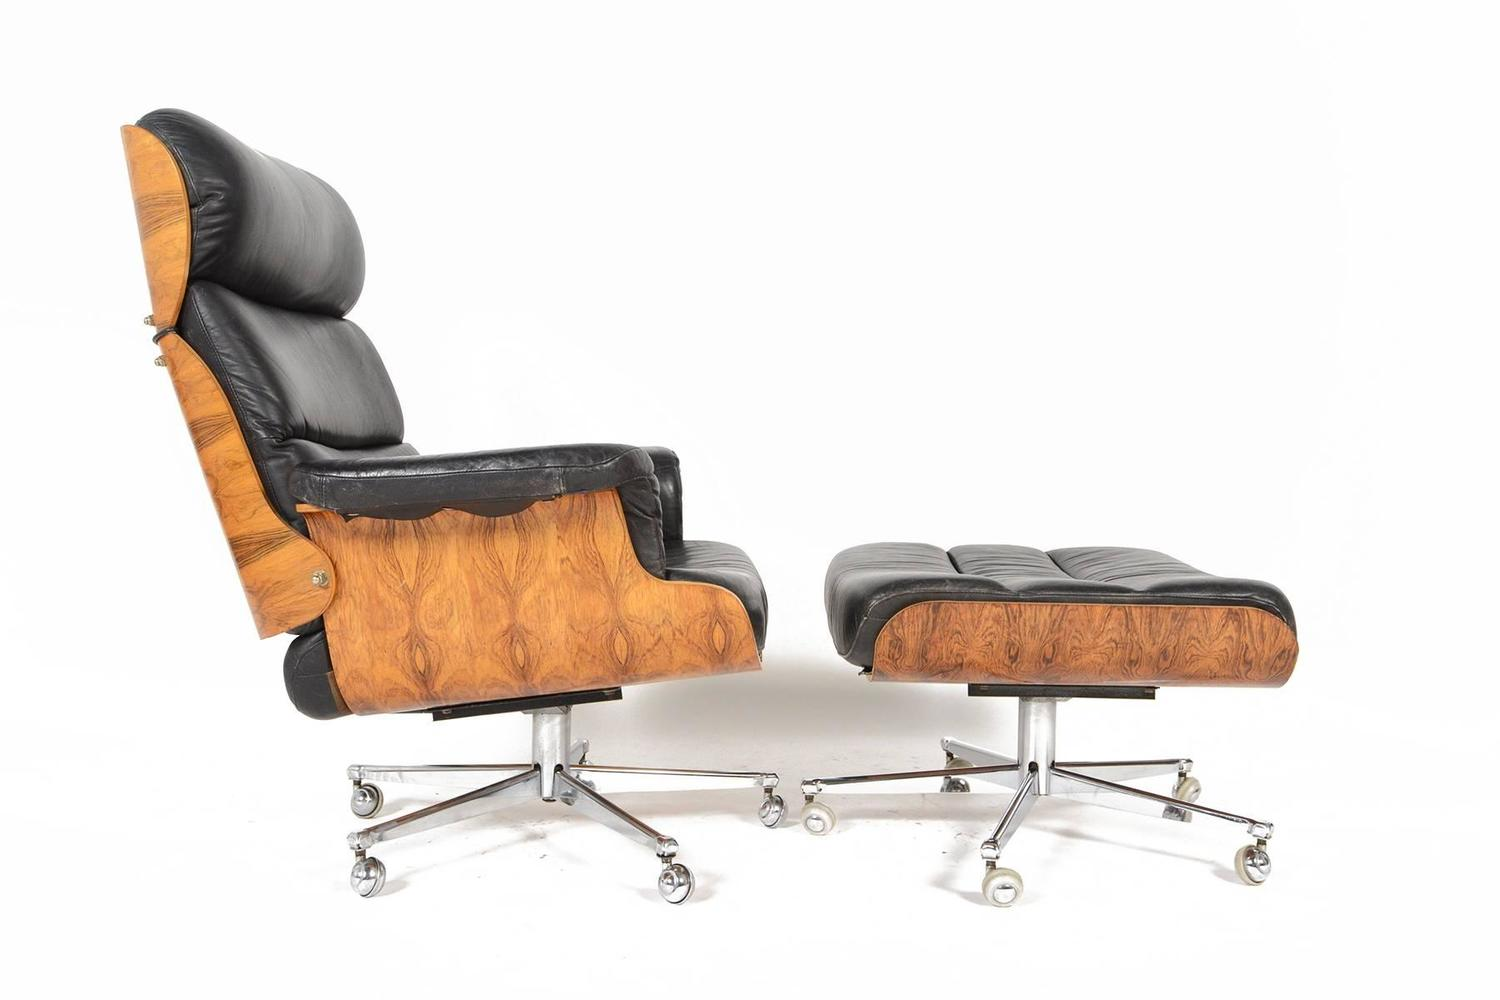 martin stoll rosewood and leather swivel chair with ottoman at 1stdibs